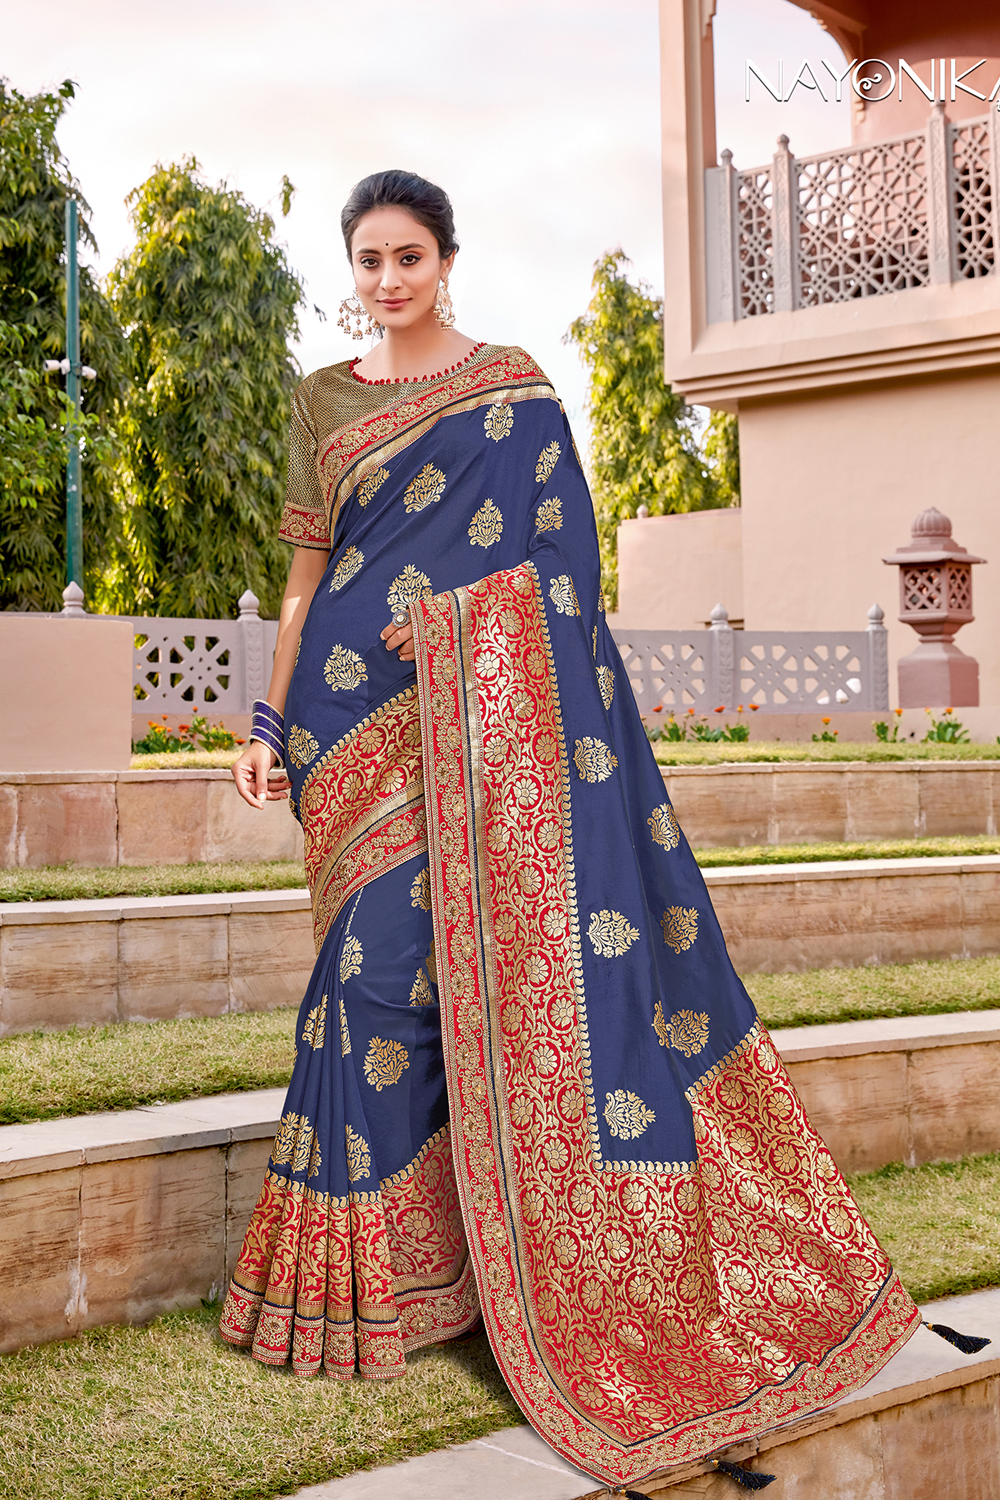 Blue saree paired with royal brocade and combined with a hint of delicate embroidery